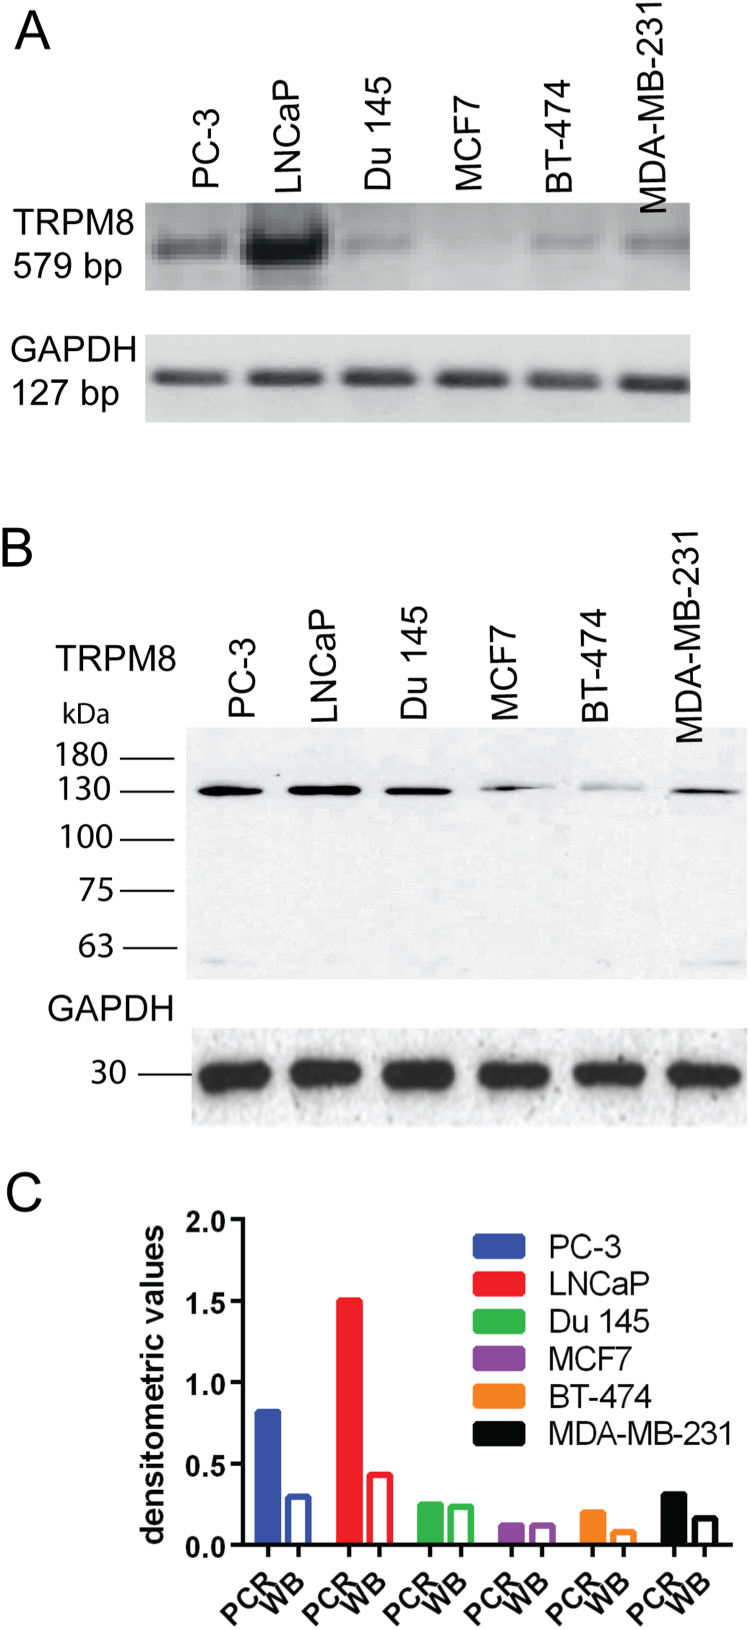 Detection of TRPM8 transcripts and protein in prostate and breast cancer cell lines. A ) Signals for TRPM8 mRNA were found in cell lines derived from prostate cancer-derived (lanes 1–3) and breast cancer-derived (lanes 4–6) cell lines. The normalization with the GAPDH housekeeping control allowed to semi-quantitatively assessing the abundance of the different transcripts present in each sample. B) Signals for TRPM8 protein were detected in all cell lines; the ones for MCF7 and BT-474 were weaker than for the other cell lines (expected mass: 129 kDa). The GAPDH protein signal was used as a loading control. C) Densitometry analysis. The values of TRPM8 expression for mRNA (filled columns) and protein (empty columns) levels were normalized to the values of GAPDH controls.